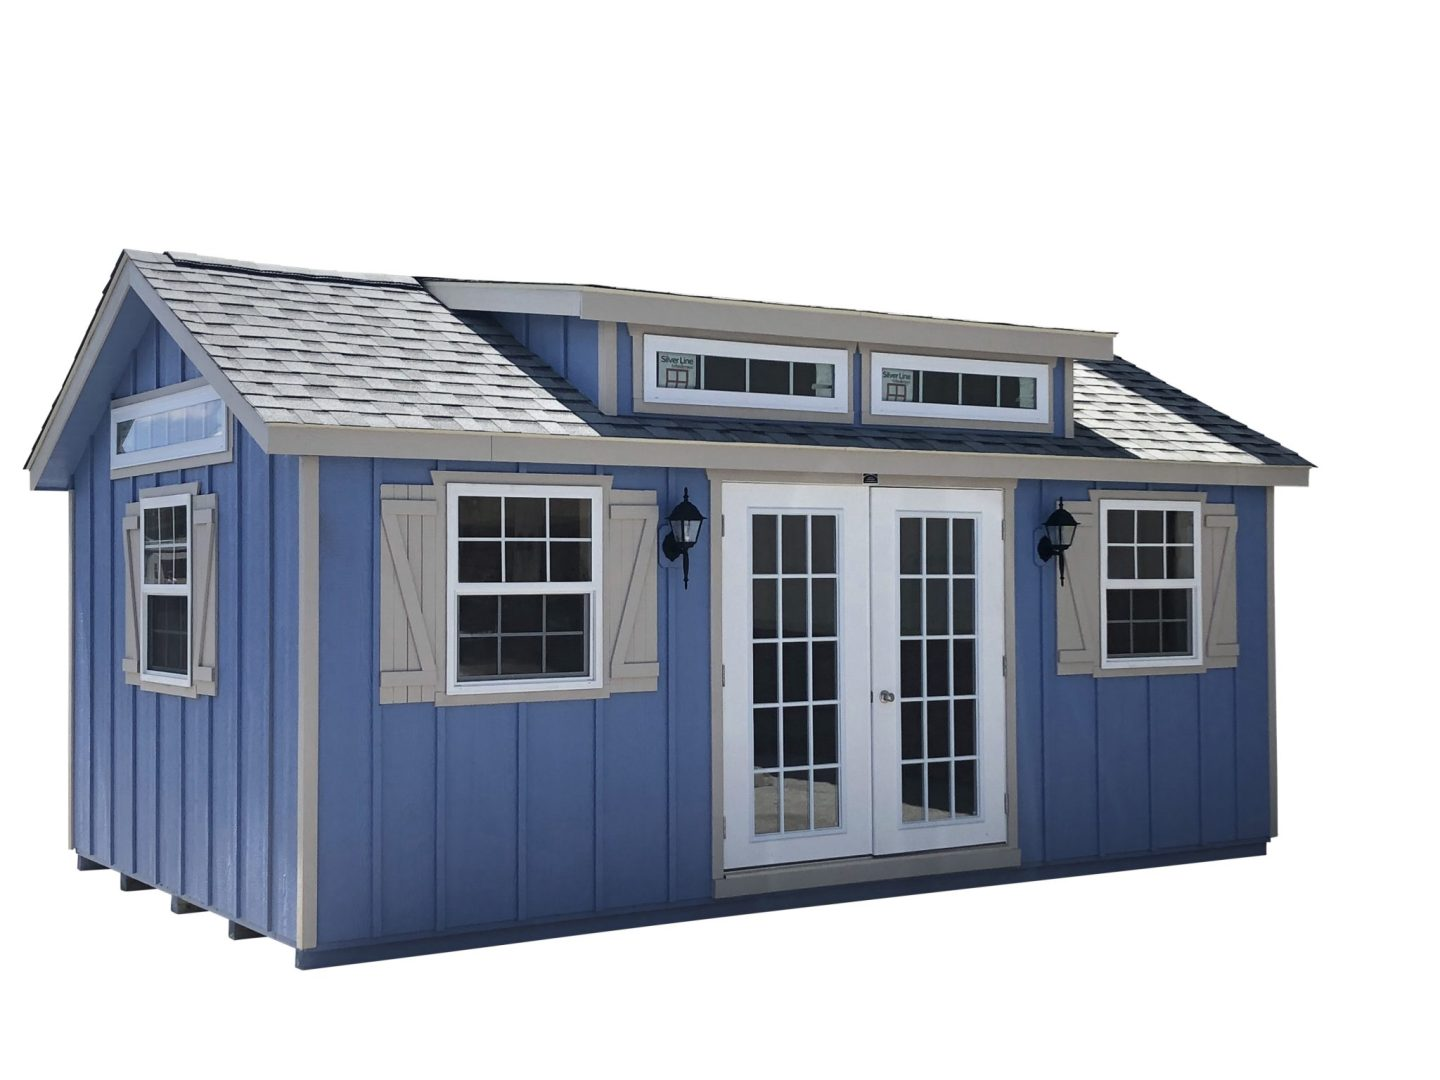 She Shed Kits | She Sheds for Sale | Stoltzfus Structures